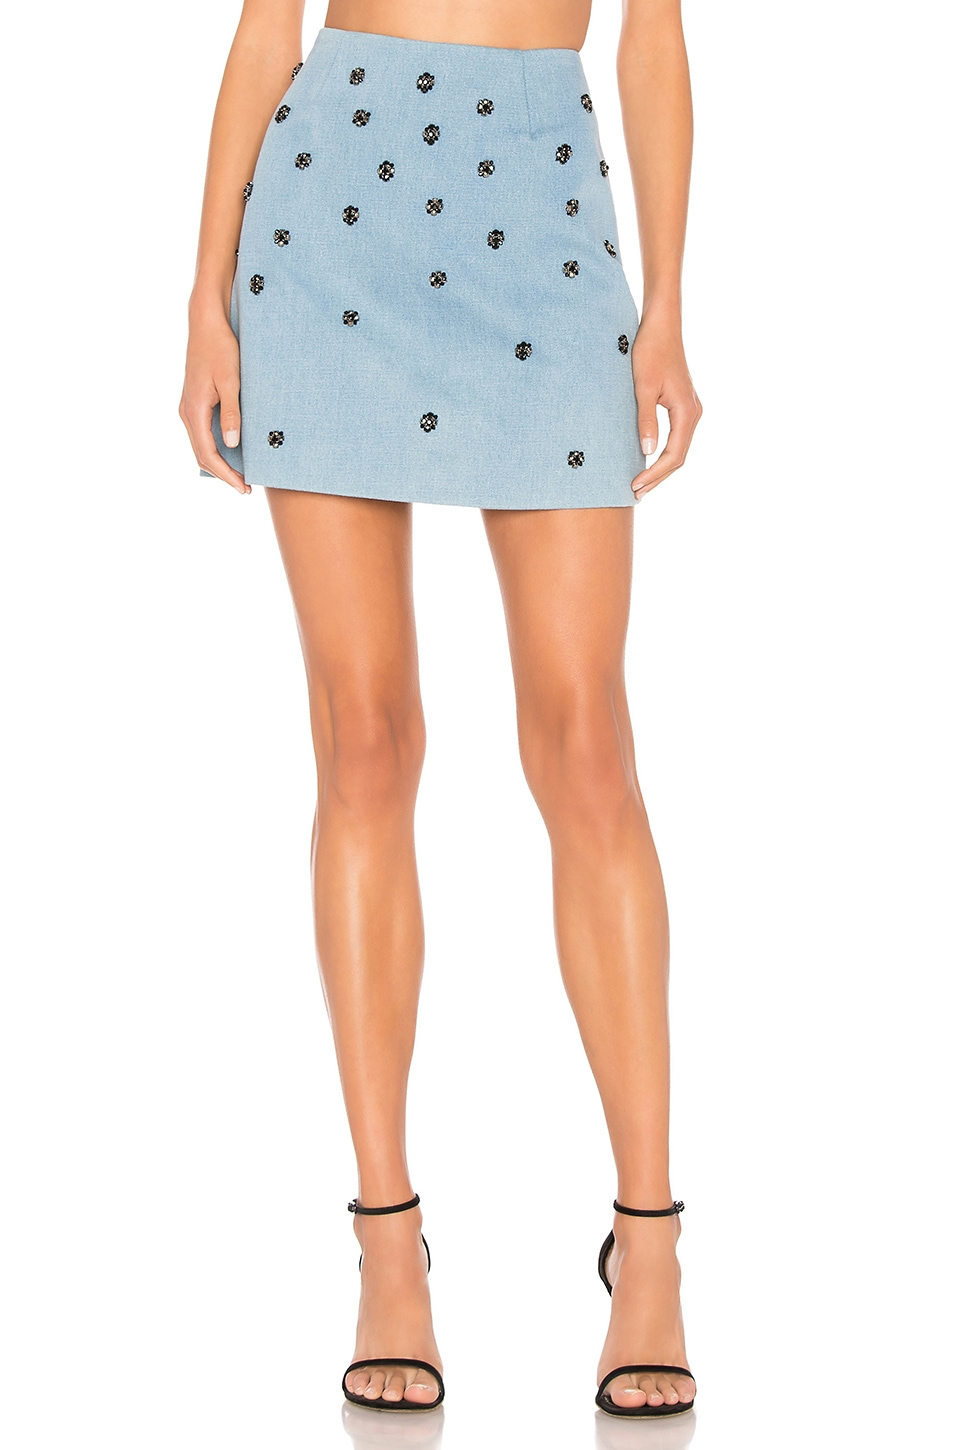 C/MEO Decoy Mini Skirt in Light Blue